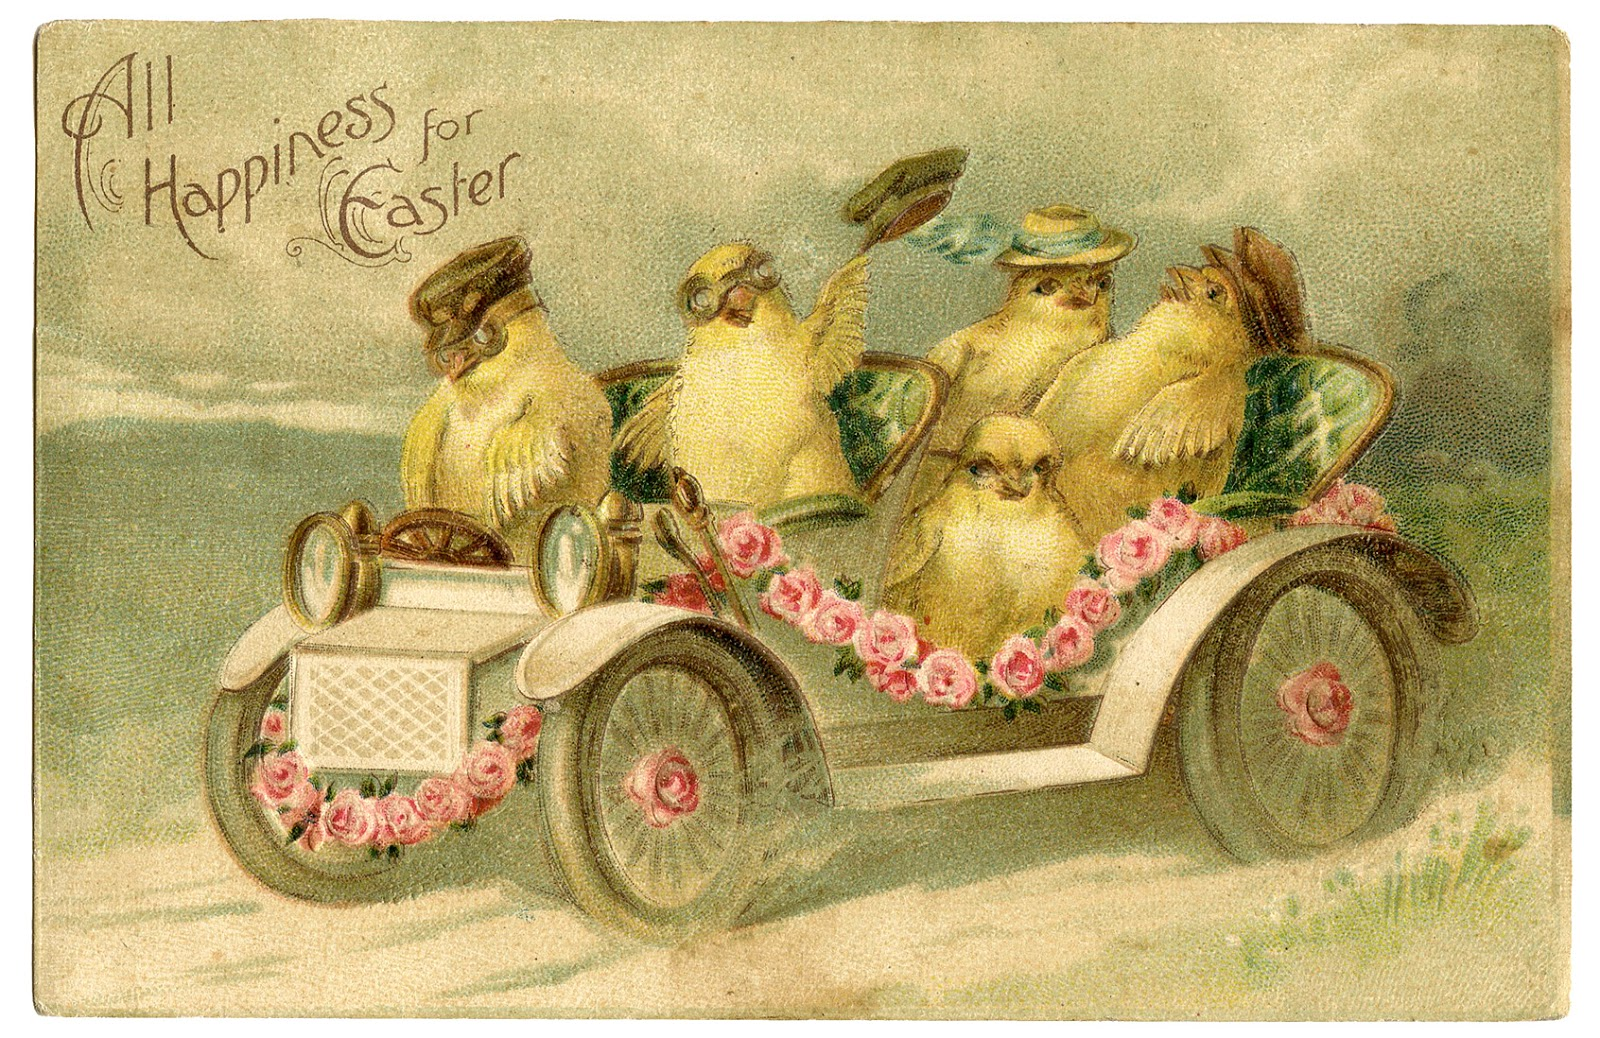 bunnies wallpaper vintage post cards - photo #42